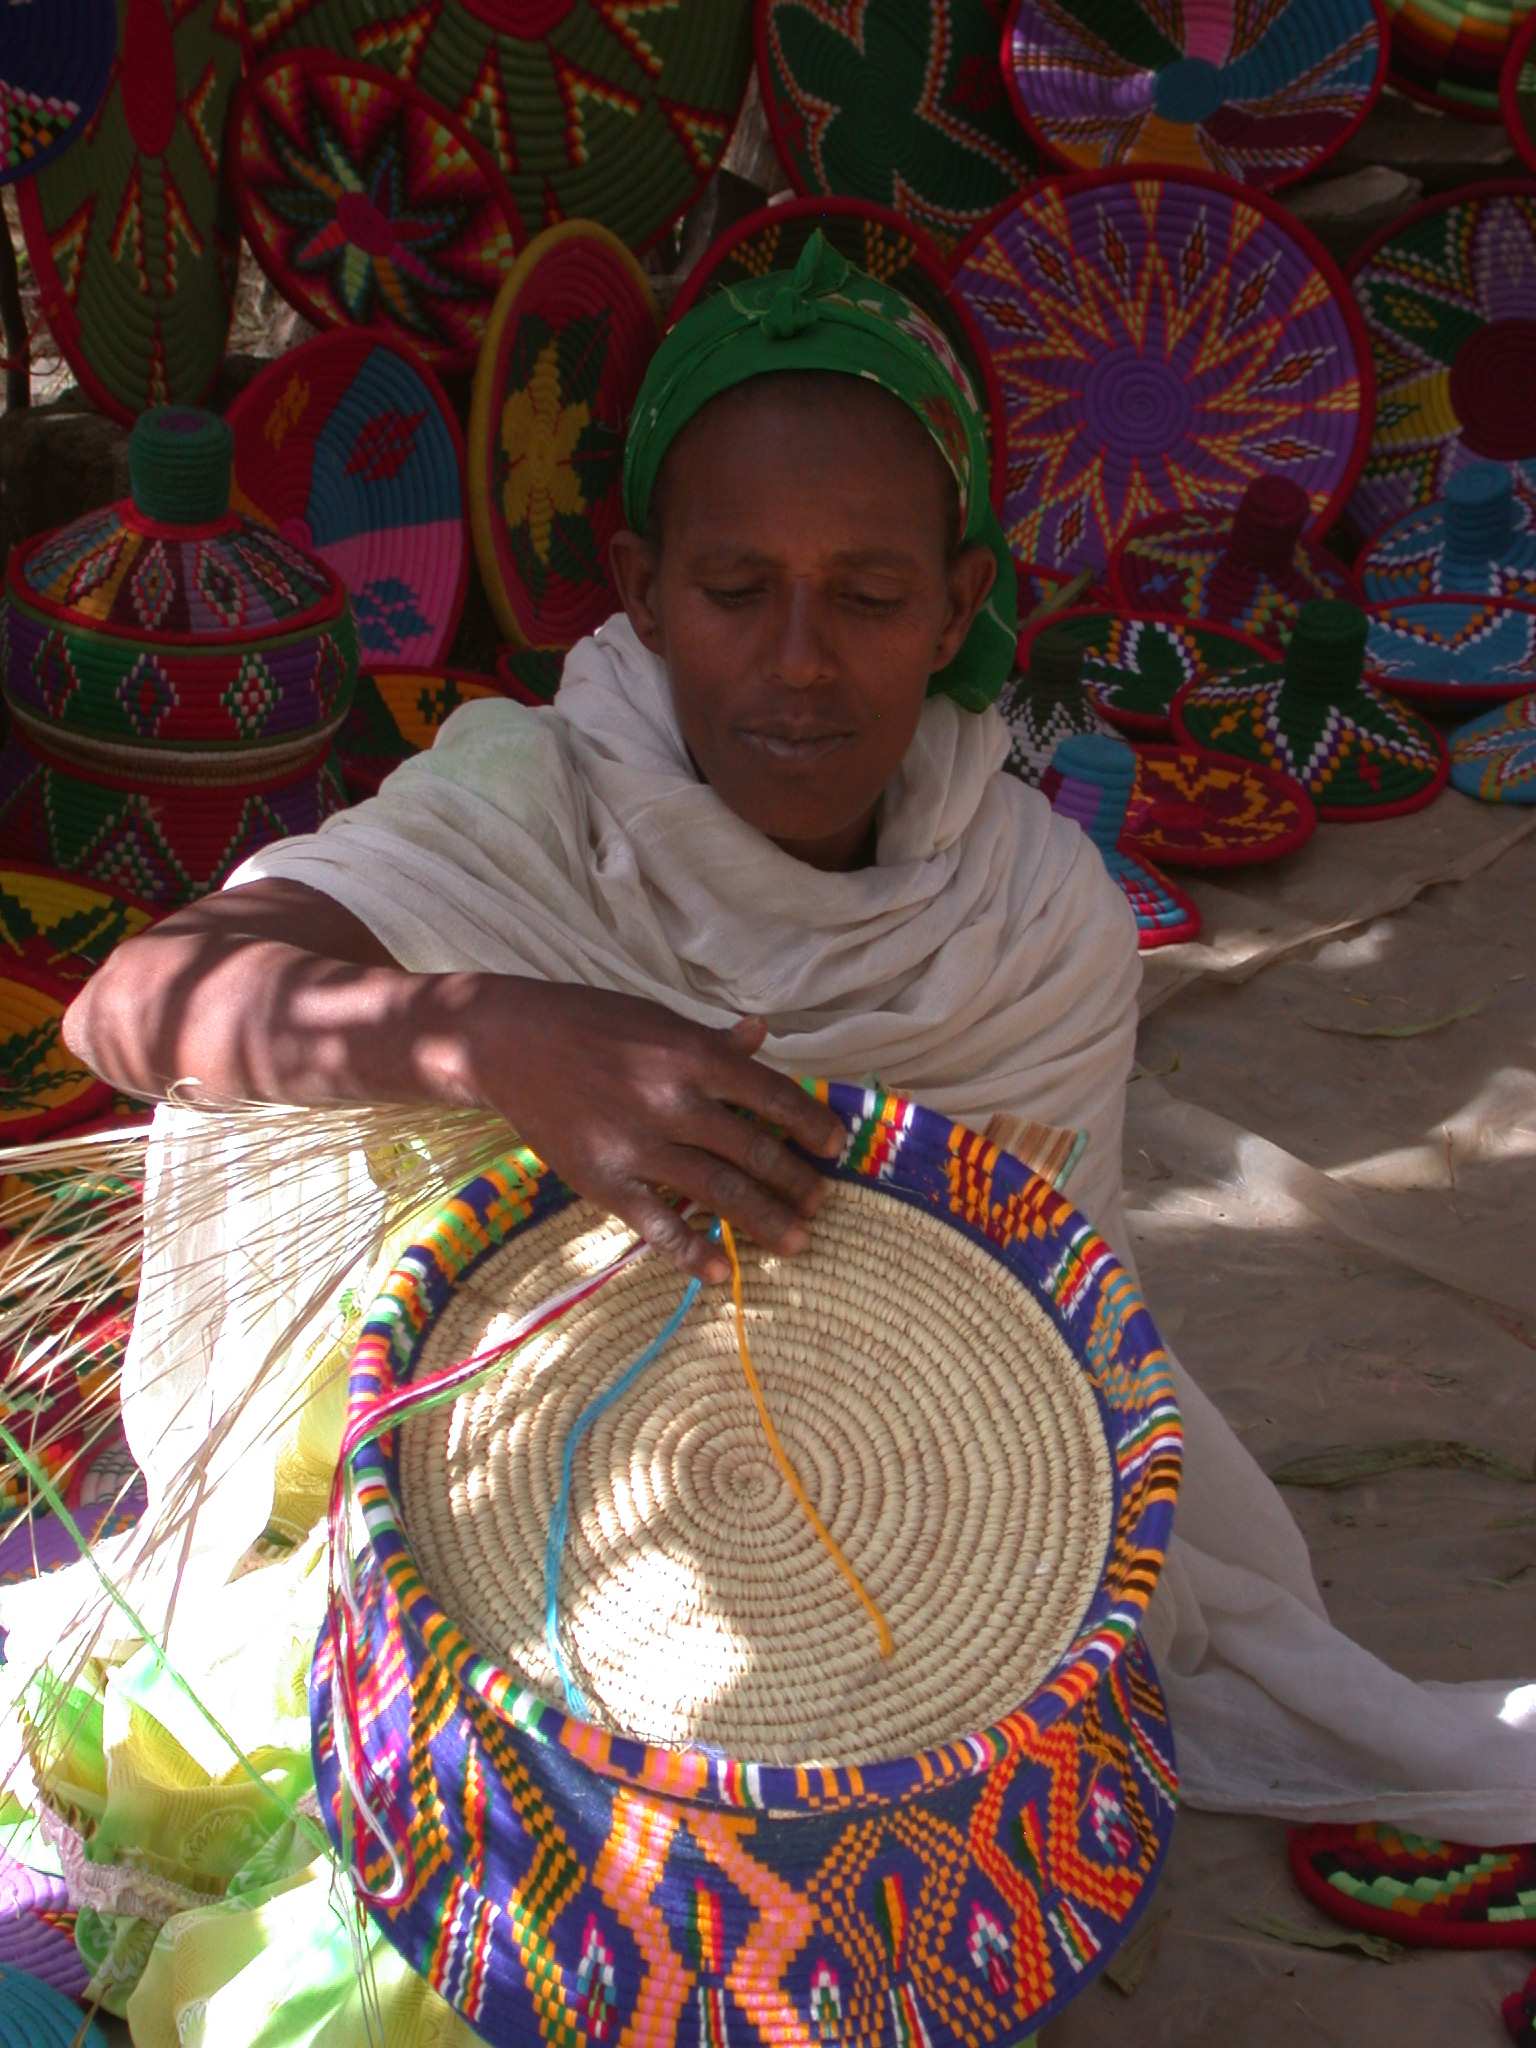 Woman Weaving Baskets Outside Axum Museum, Axum, Tigrai, Ethiopia